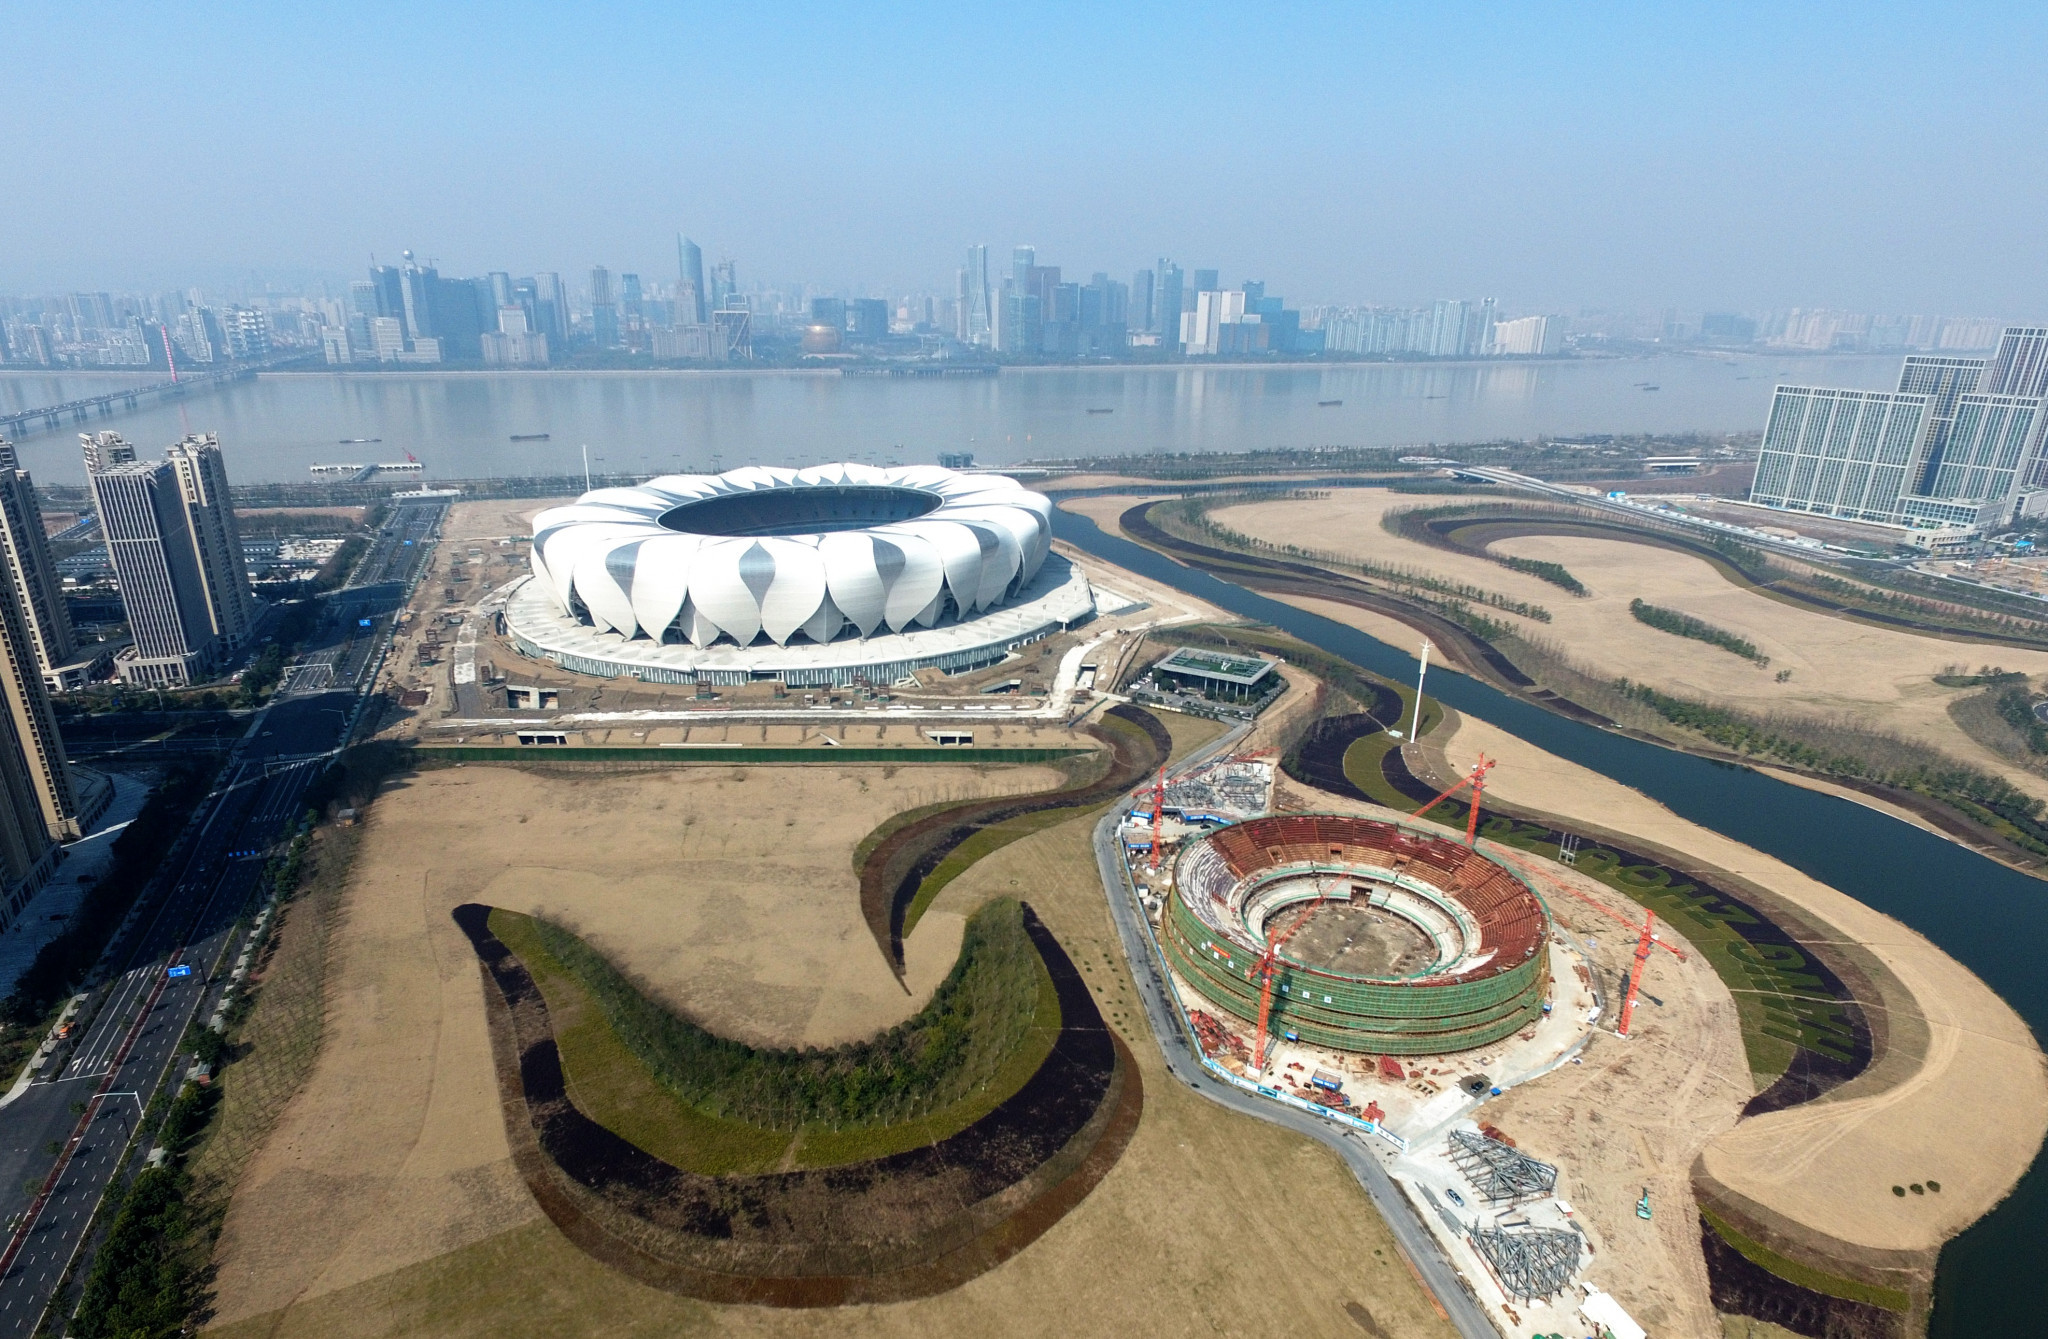 Hangzhou 2022 stadium to serve as finish line for city's marathon